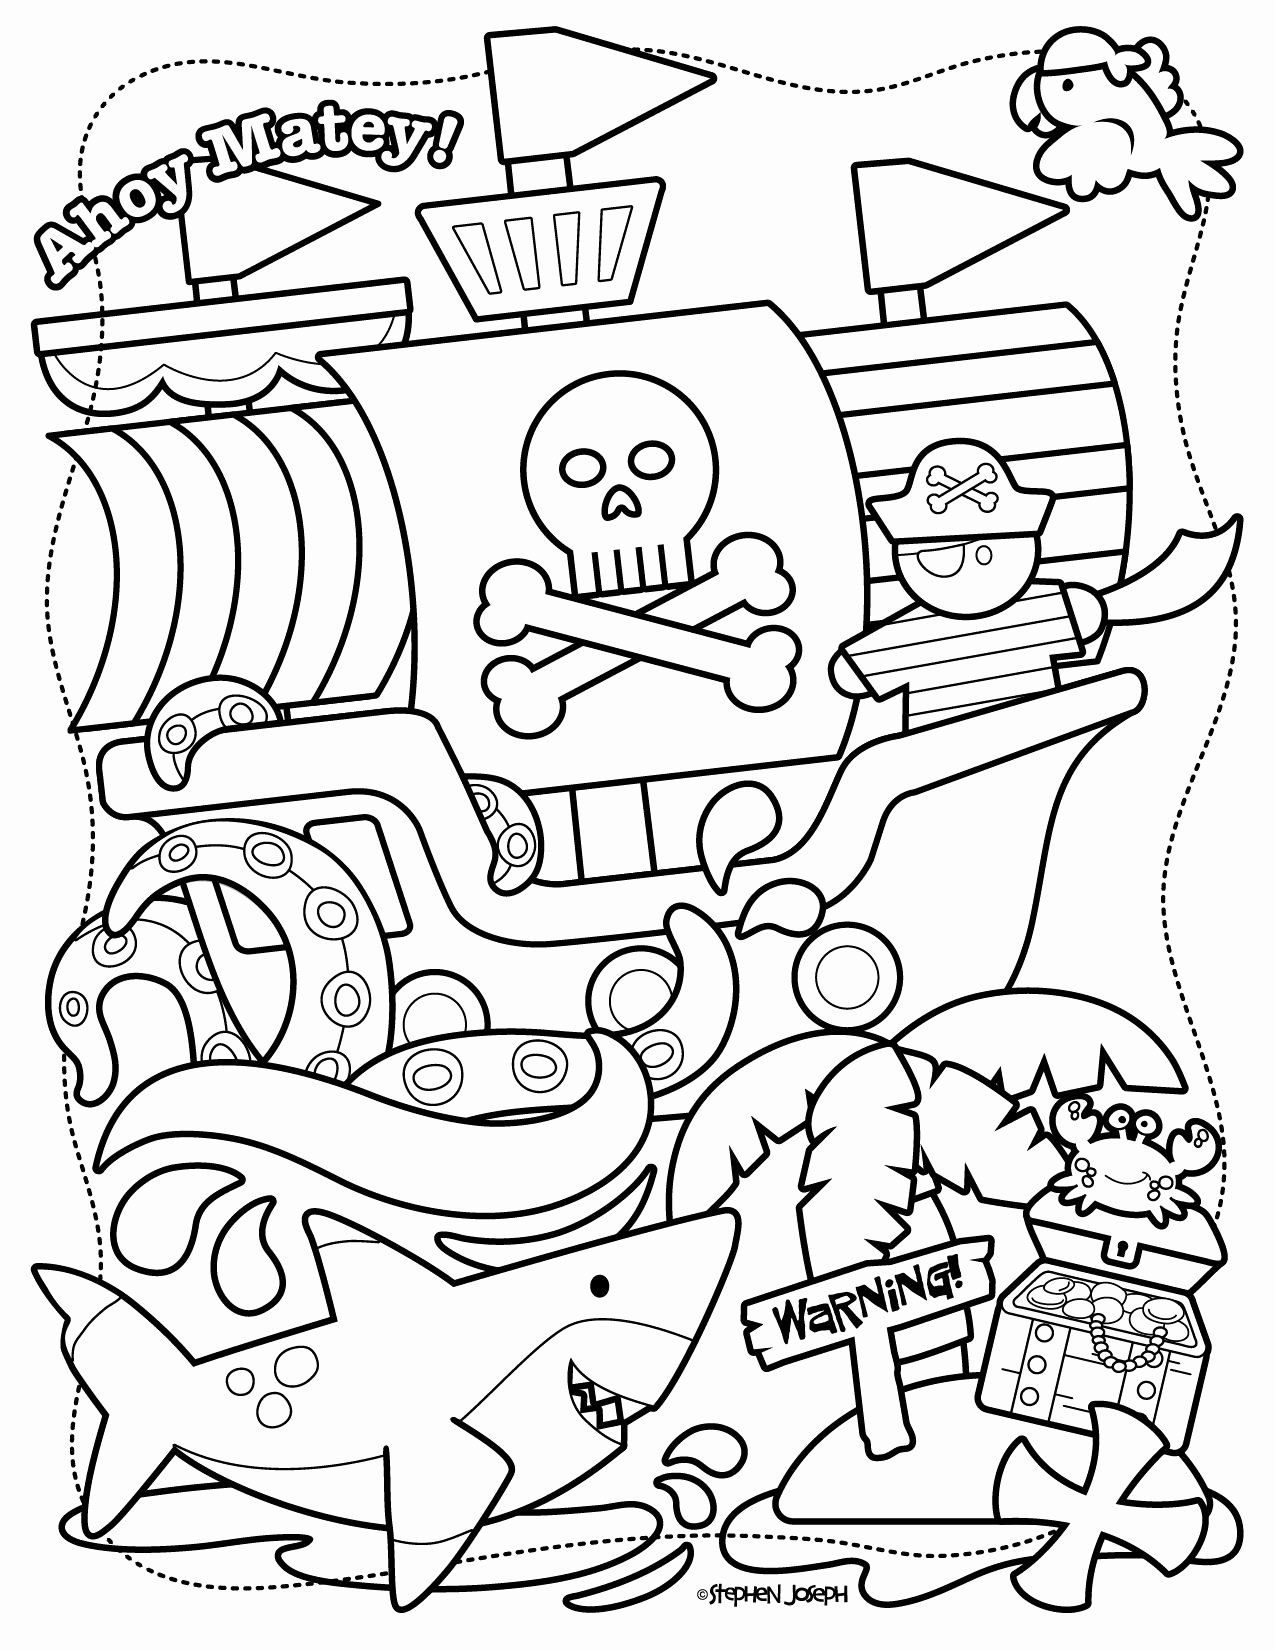 Treasure Chest Coloring Page Awesome Coloring Pages Pirate